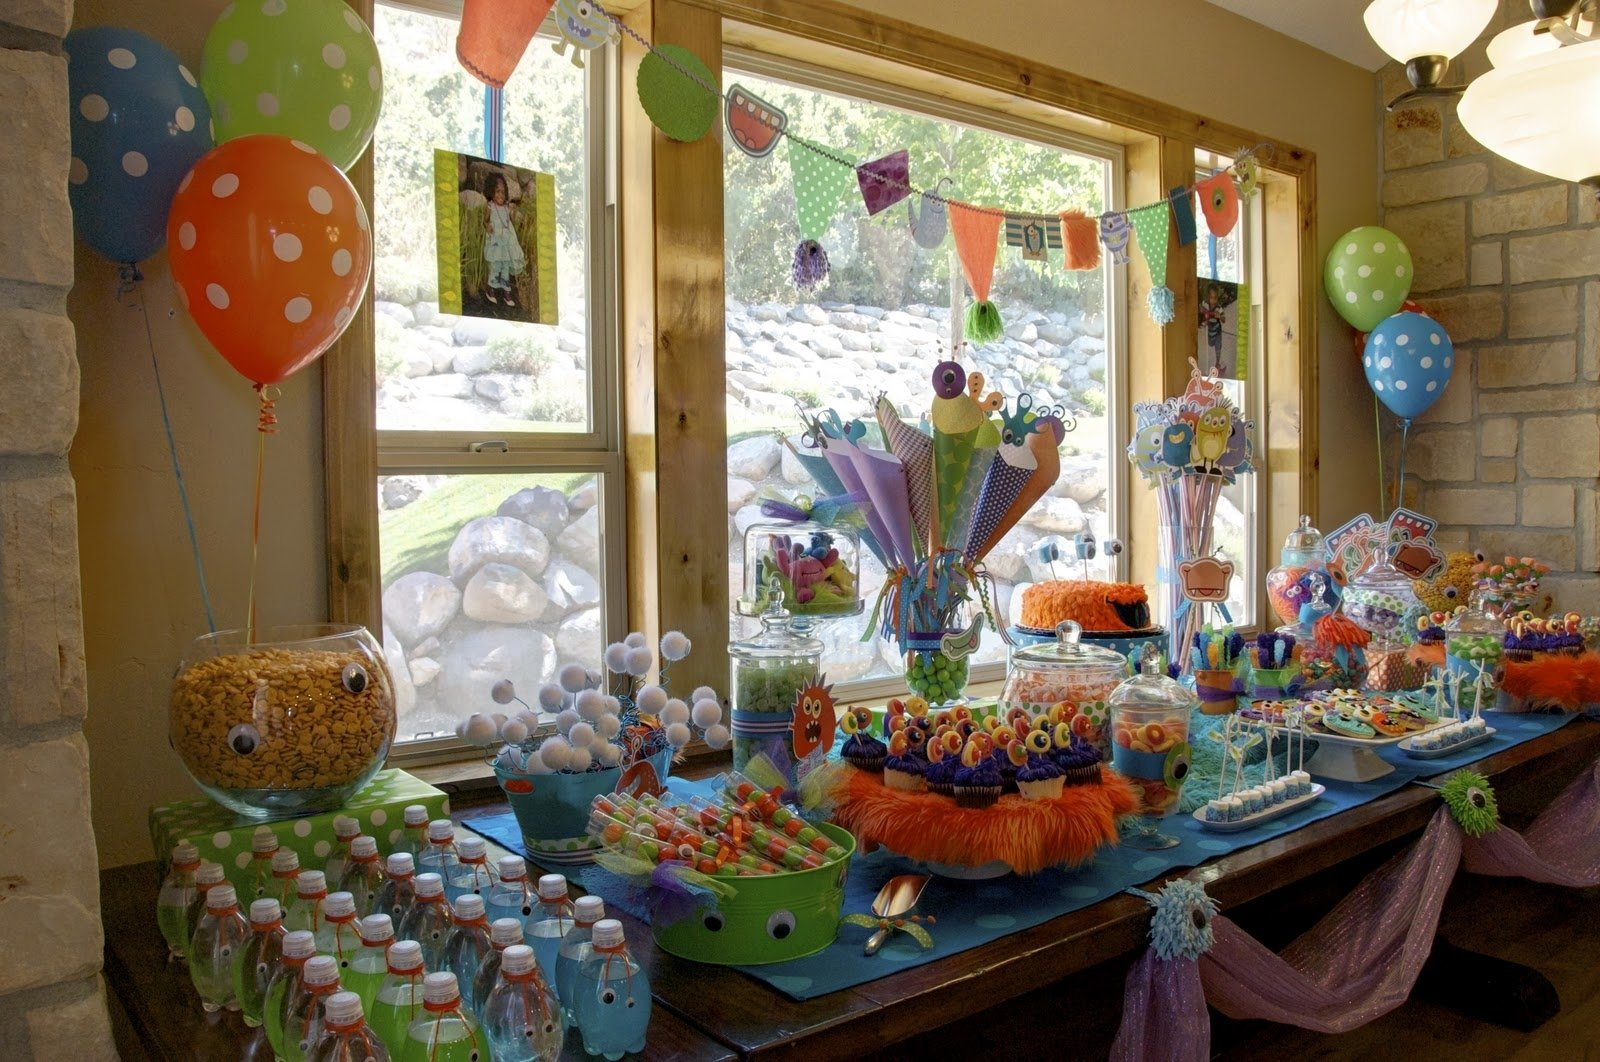 10 Cute Ideas For A 14 Year Old Birthday Party my friends birthday is in the winter and she wanteaes cause shes 19 2021